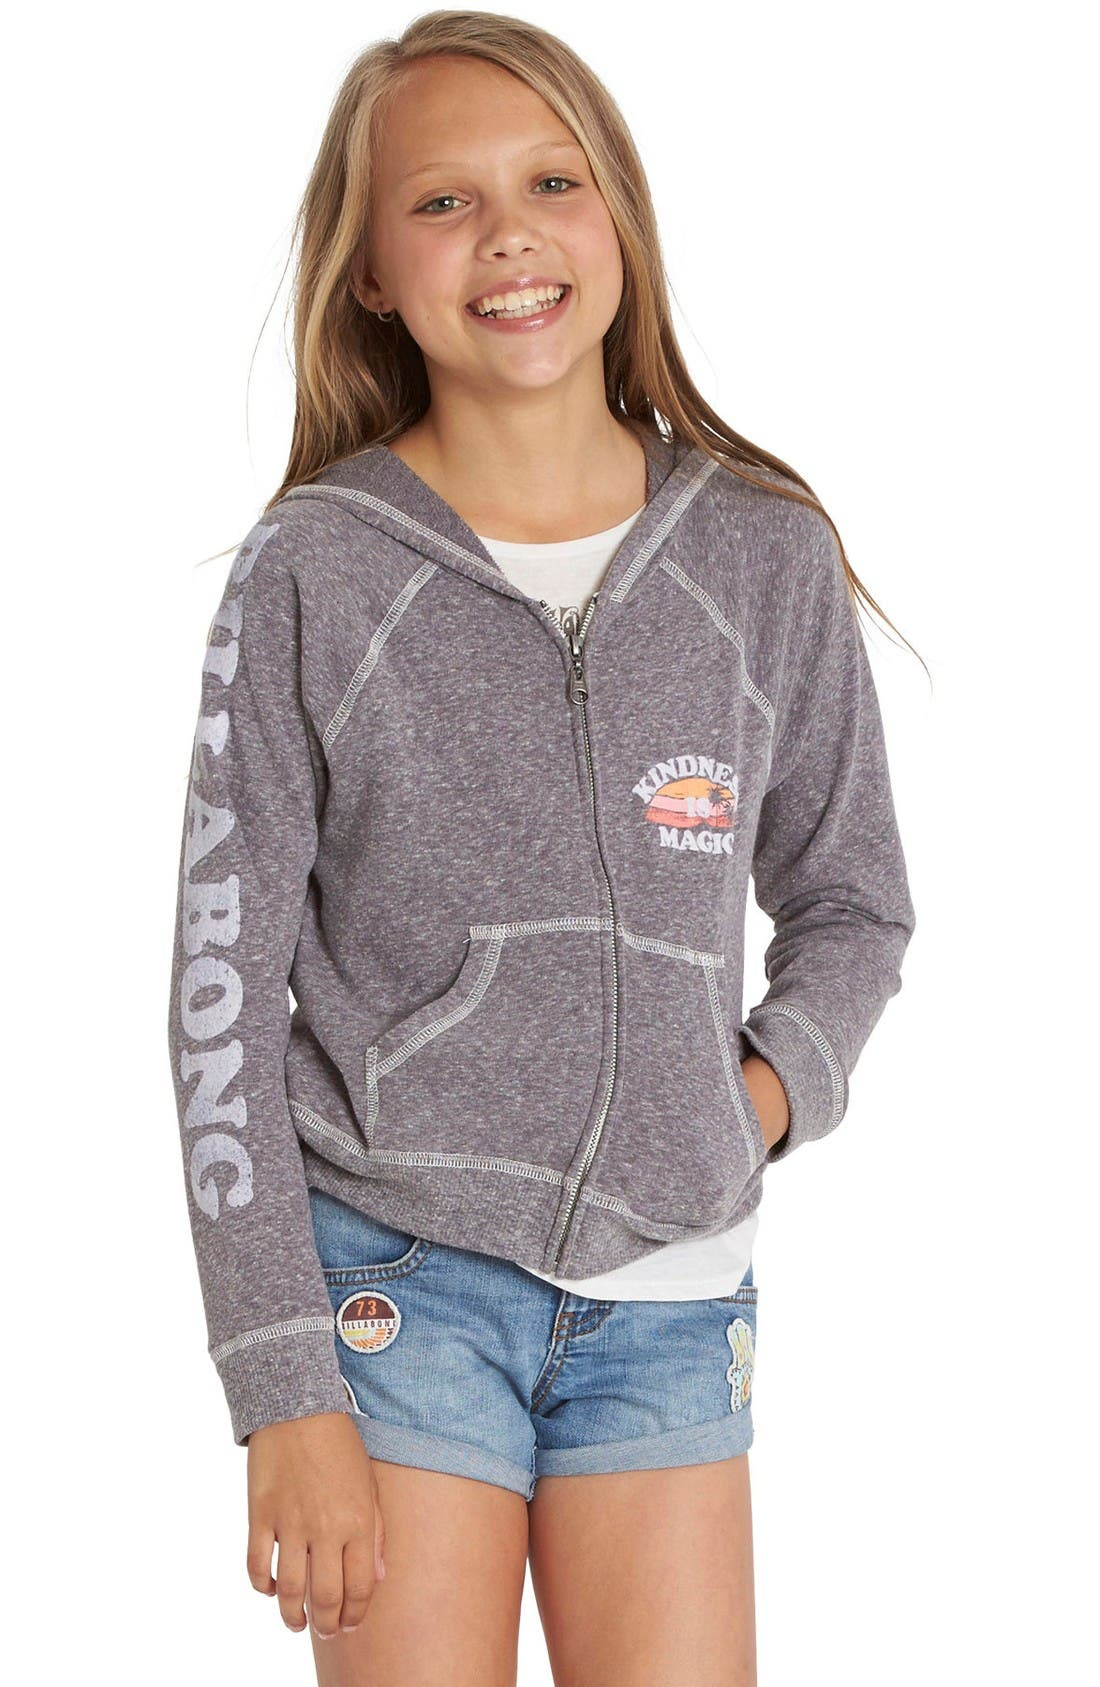 Enjoy free shipping and easy returns every day at Kohl's. Find great deals on Girls Hoodies & Sweatshirts Kids Tops at Kohl's today!